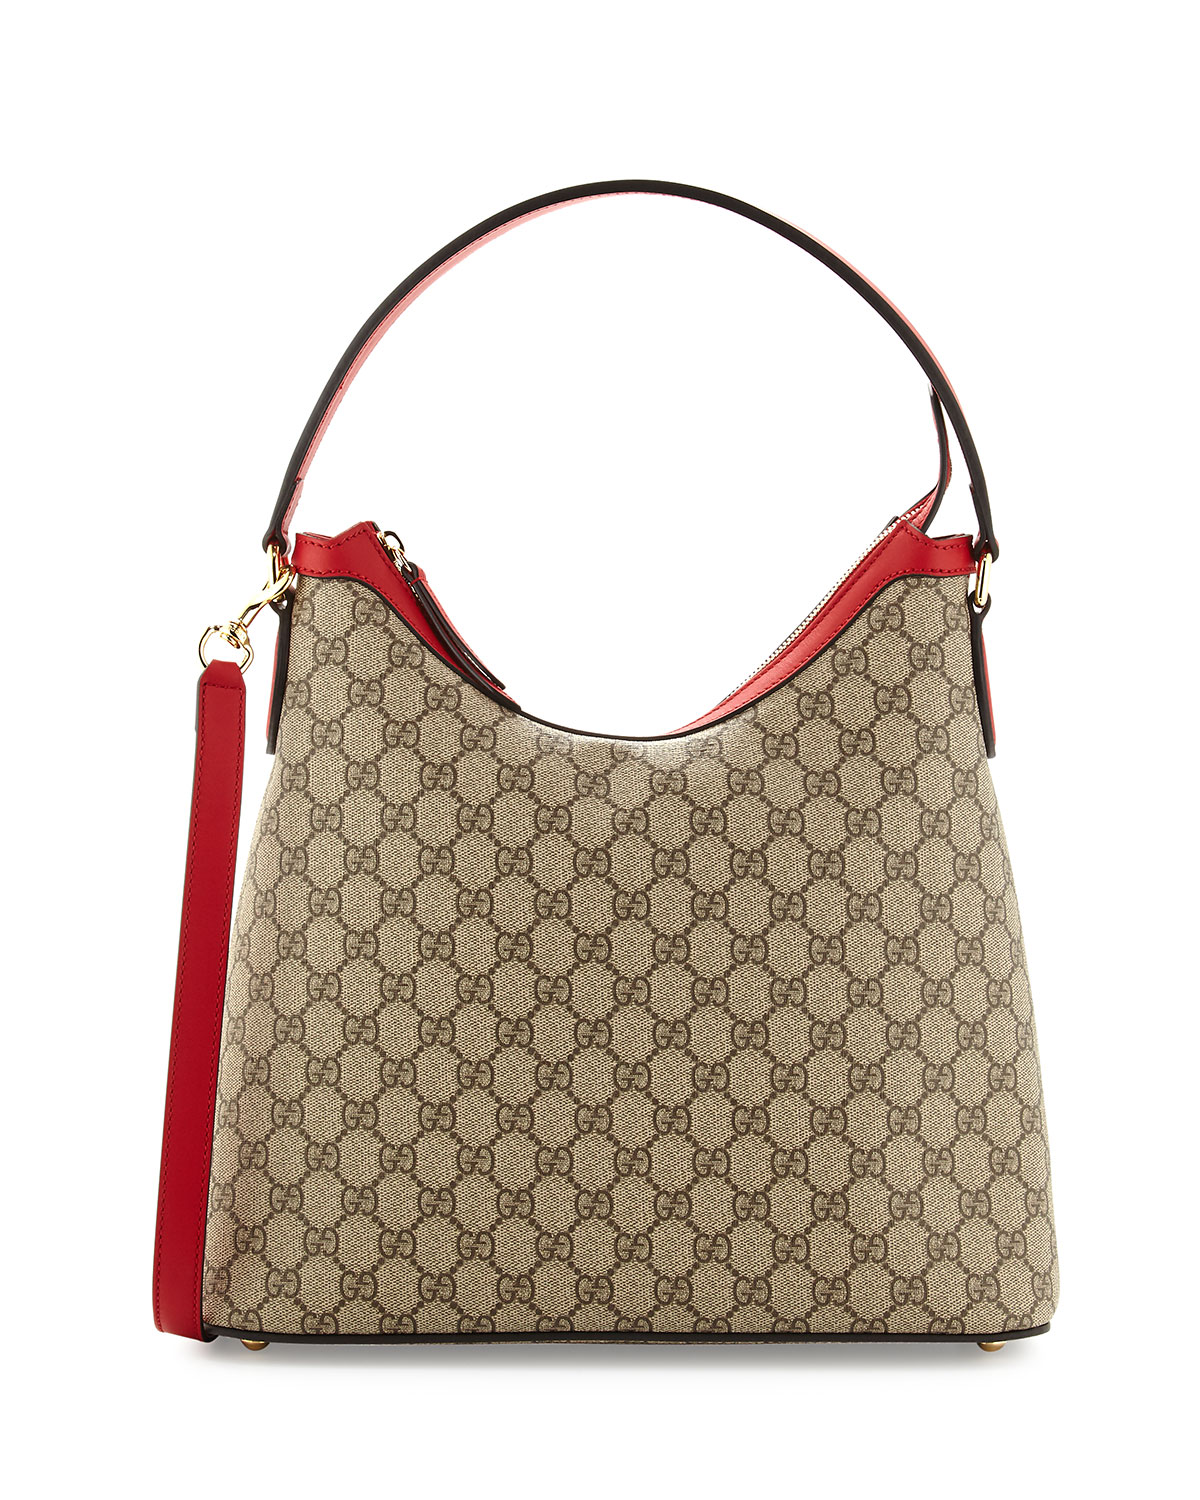 Gucci Gg Supreme Hobo Bag Red Pink